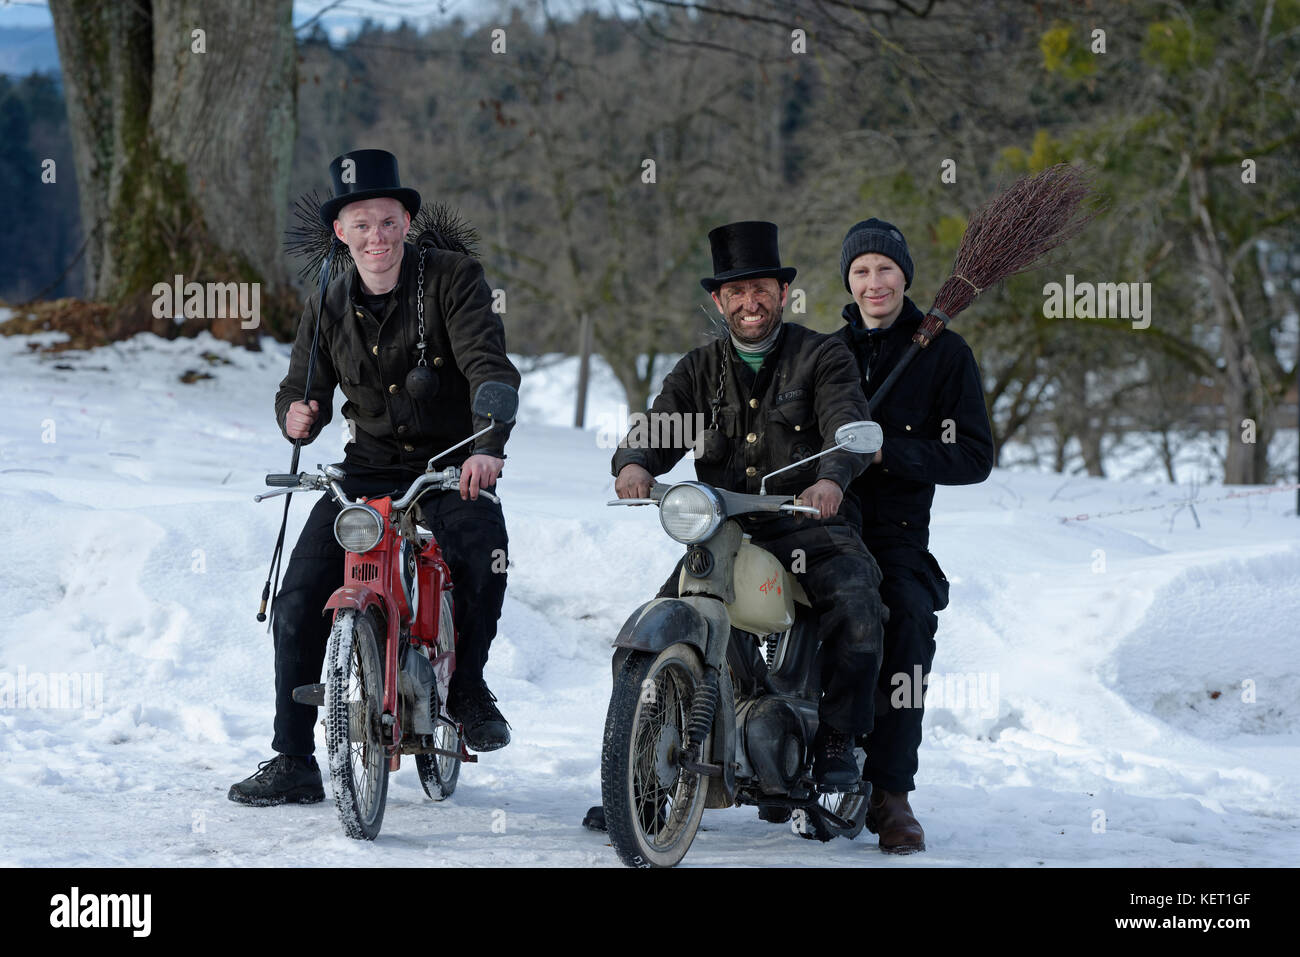 Chemin Cheminée Mary Poppins Chimney Sweepers Photos Chimney Sweepers Images Alamy